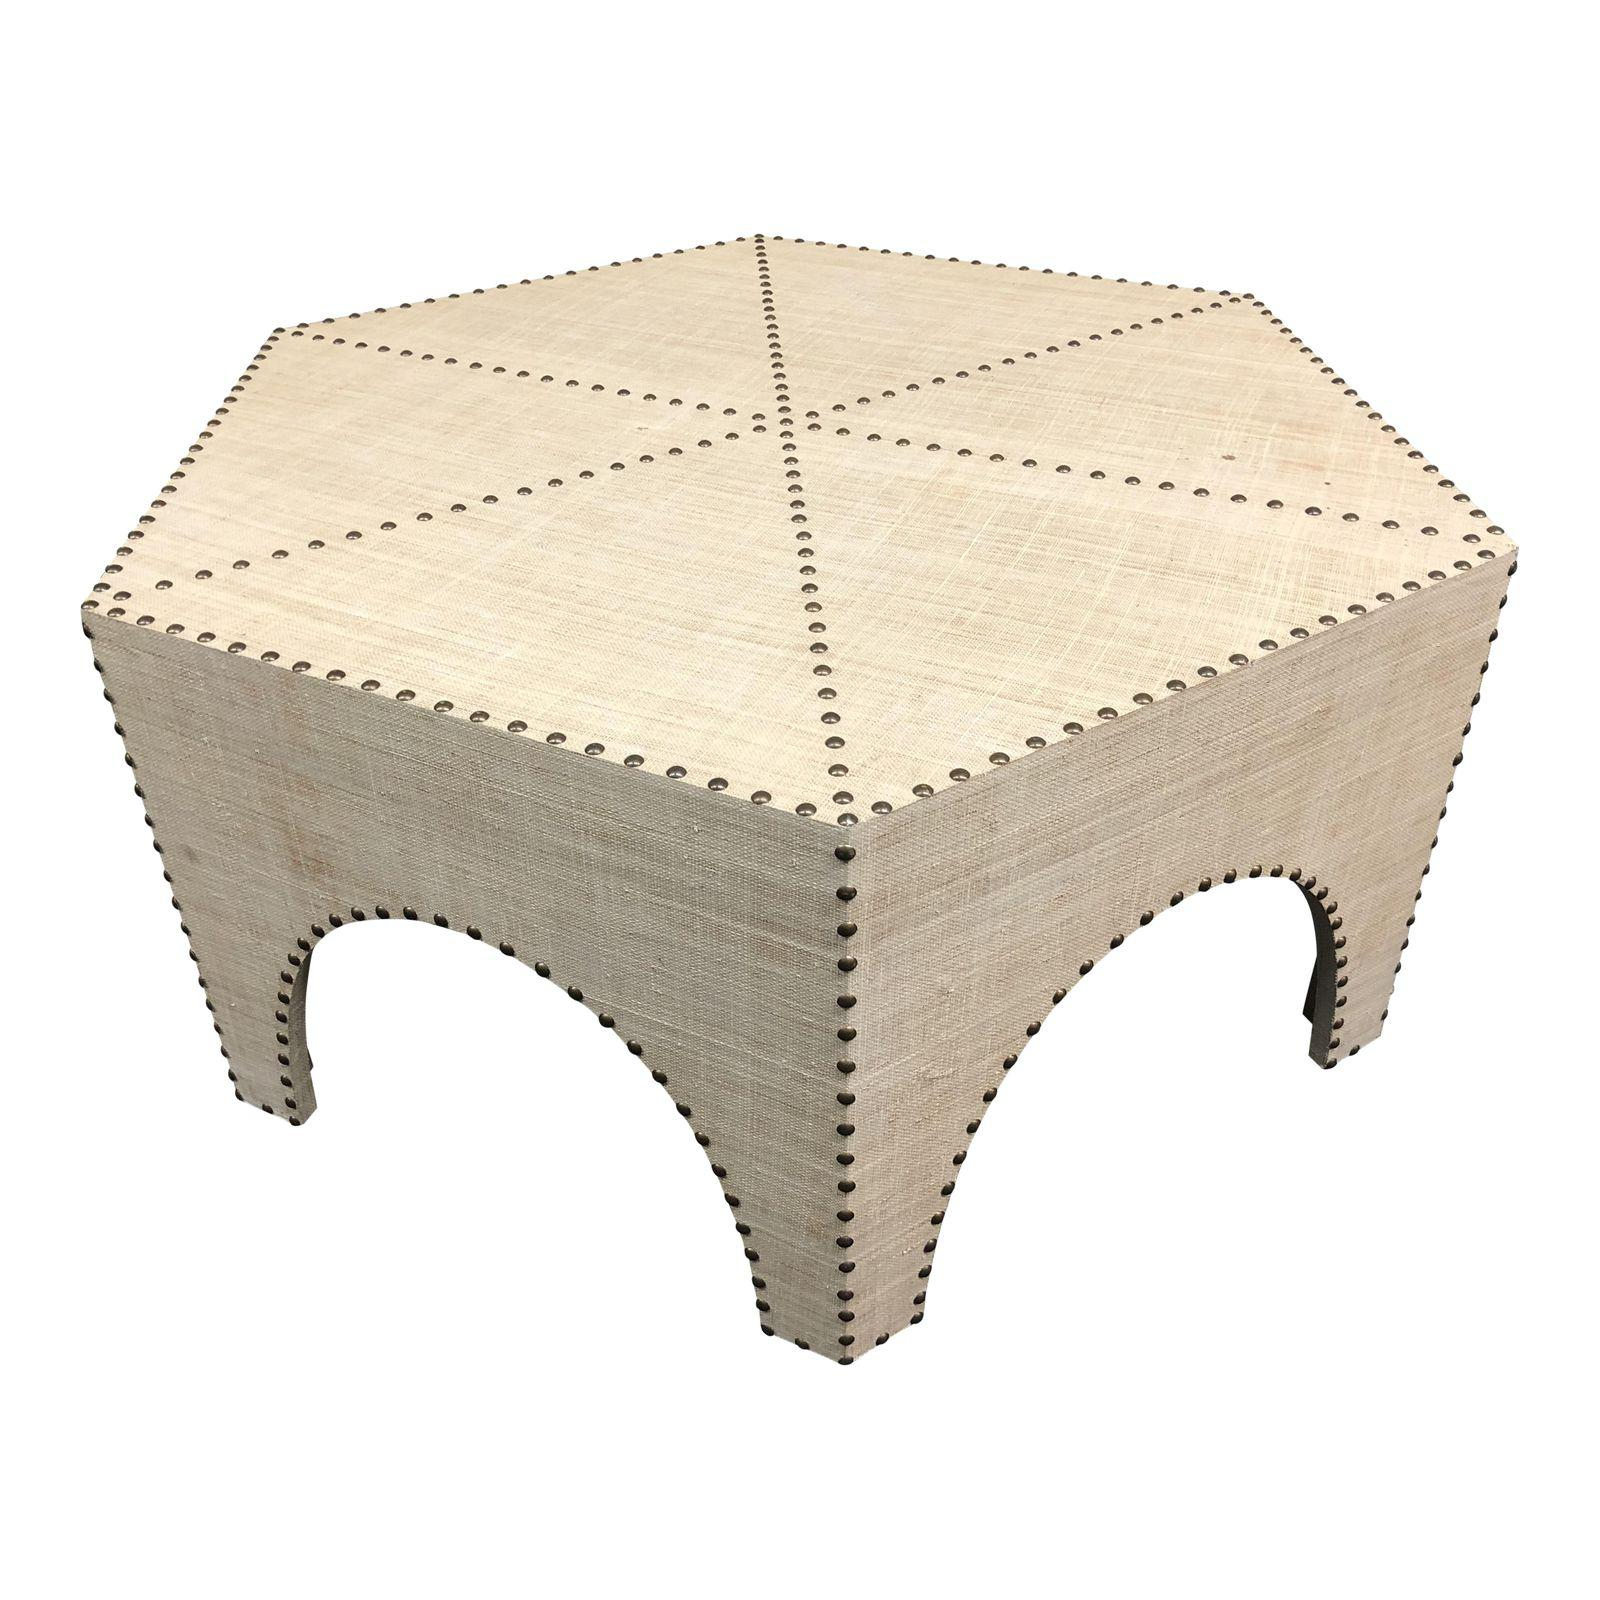 Popular Casablanca Coffee Tables Regarding New Palecek Casablanca Raffia Coffee Table – Design Plus Gallery (Gallery 4 of 20)